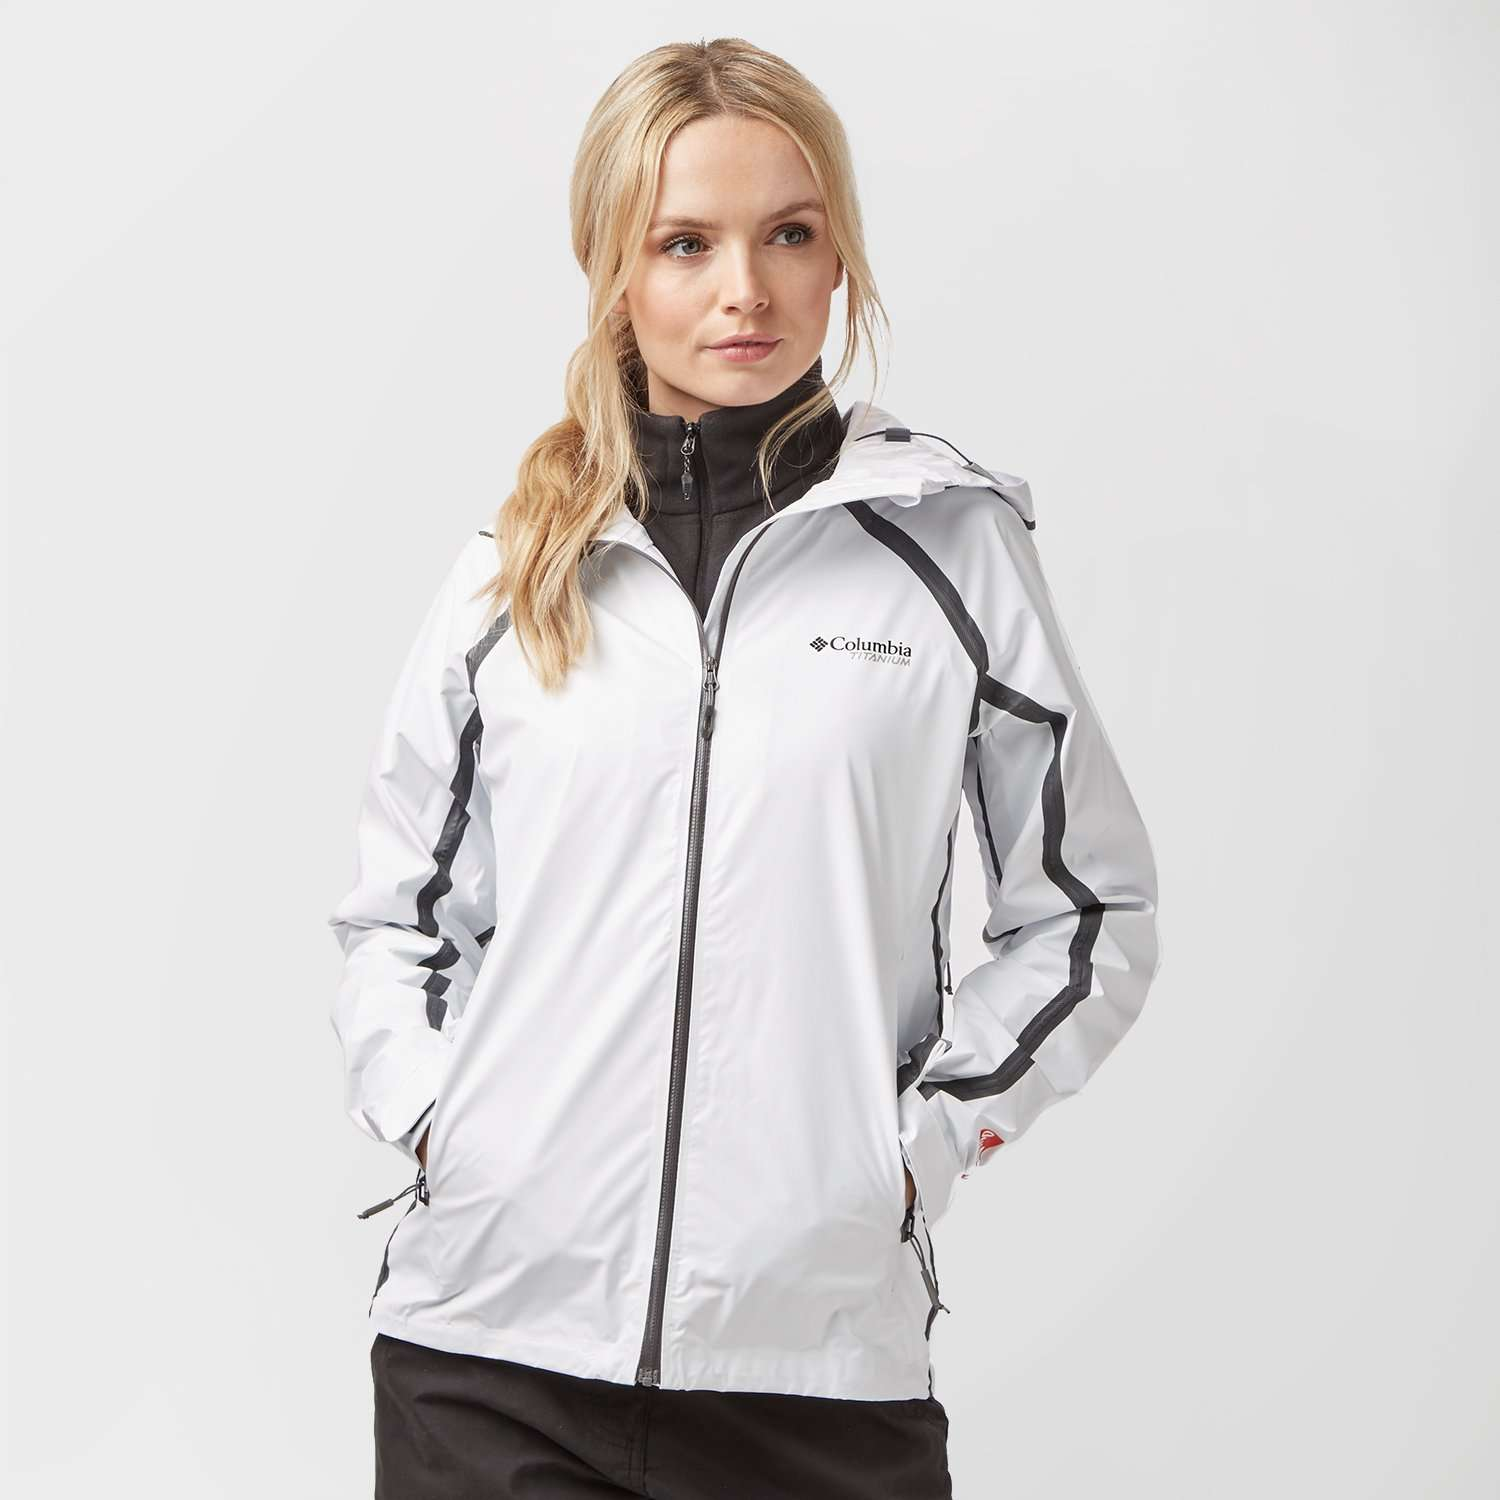 COLUMBIA Women's OutDry™ Tech Shell Jacket